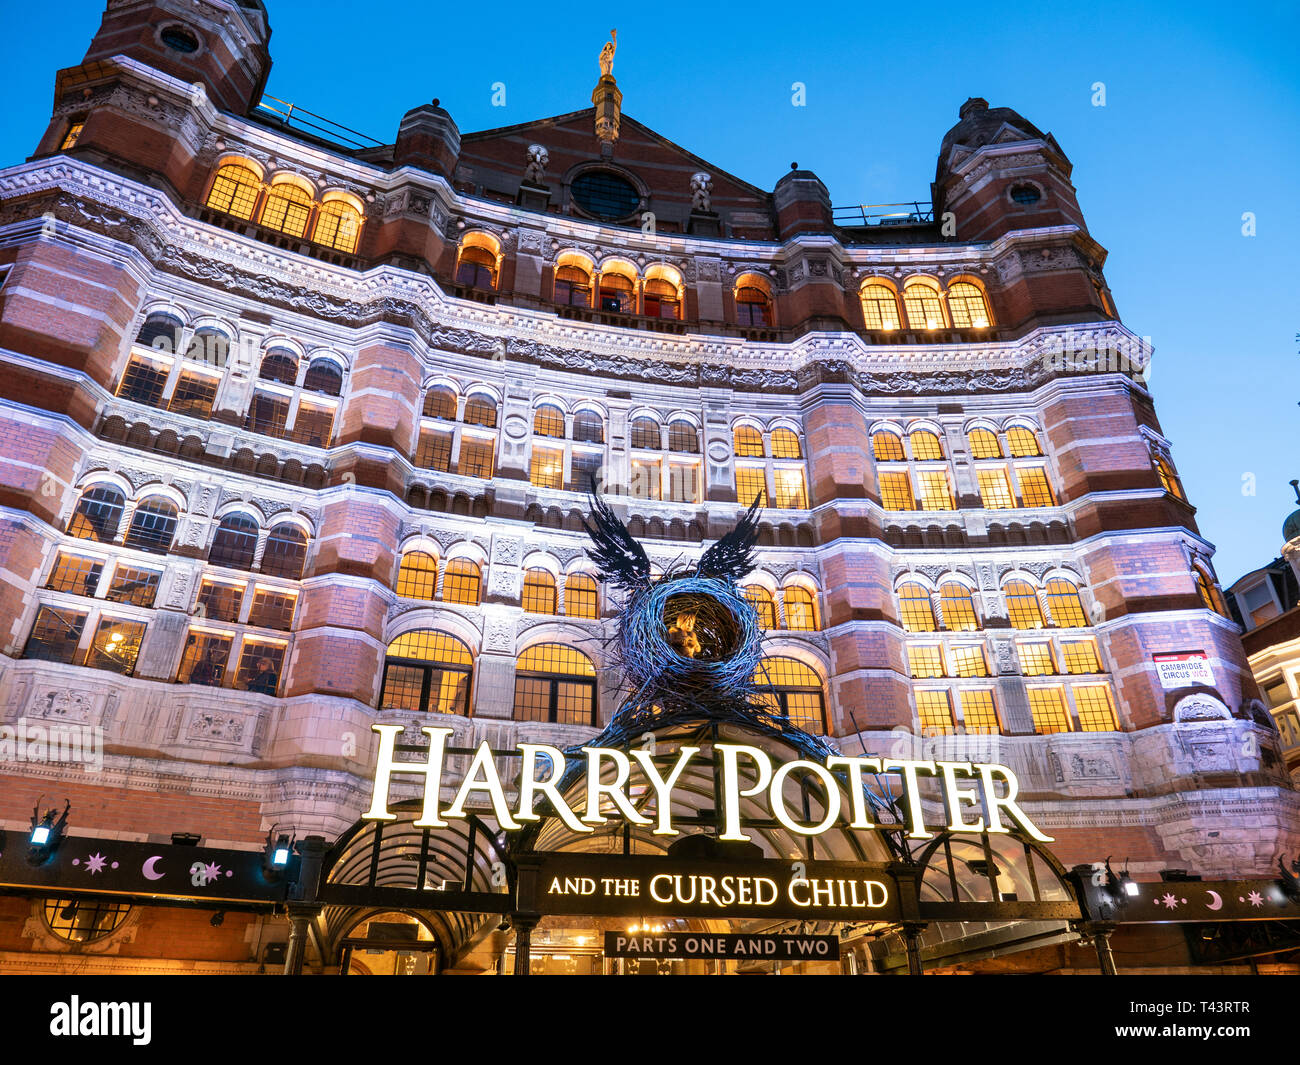 Harry Potter an the Cursed Child at the Palace Theatre, Shaftesbury Avenue, London, UK - Stock Image